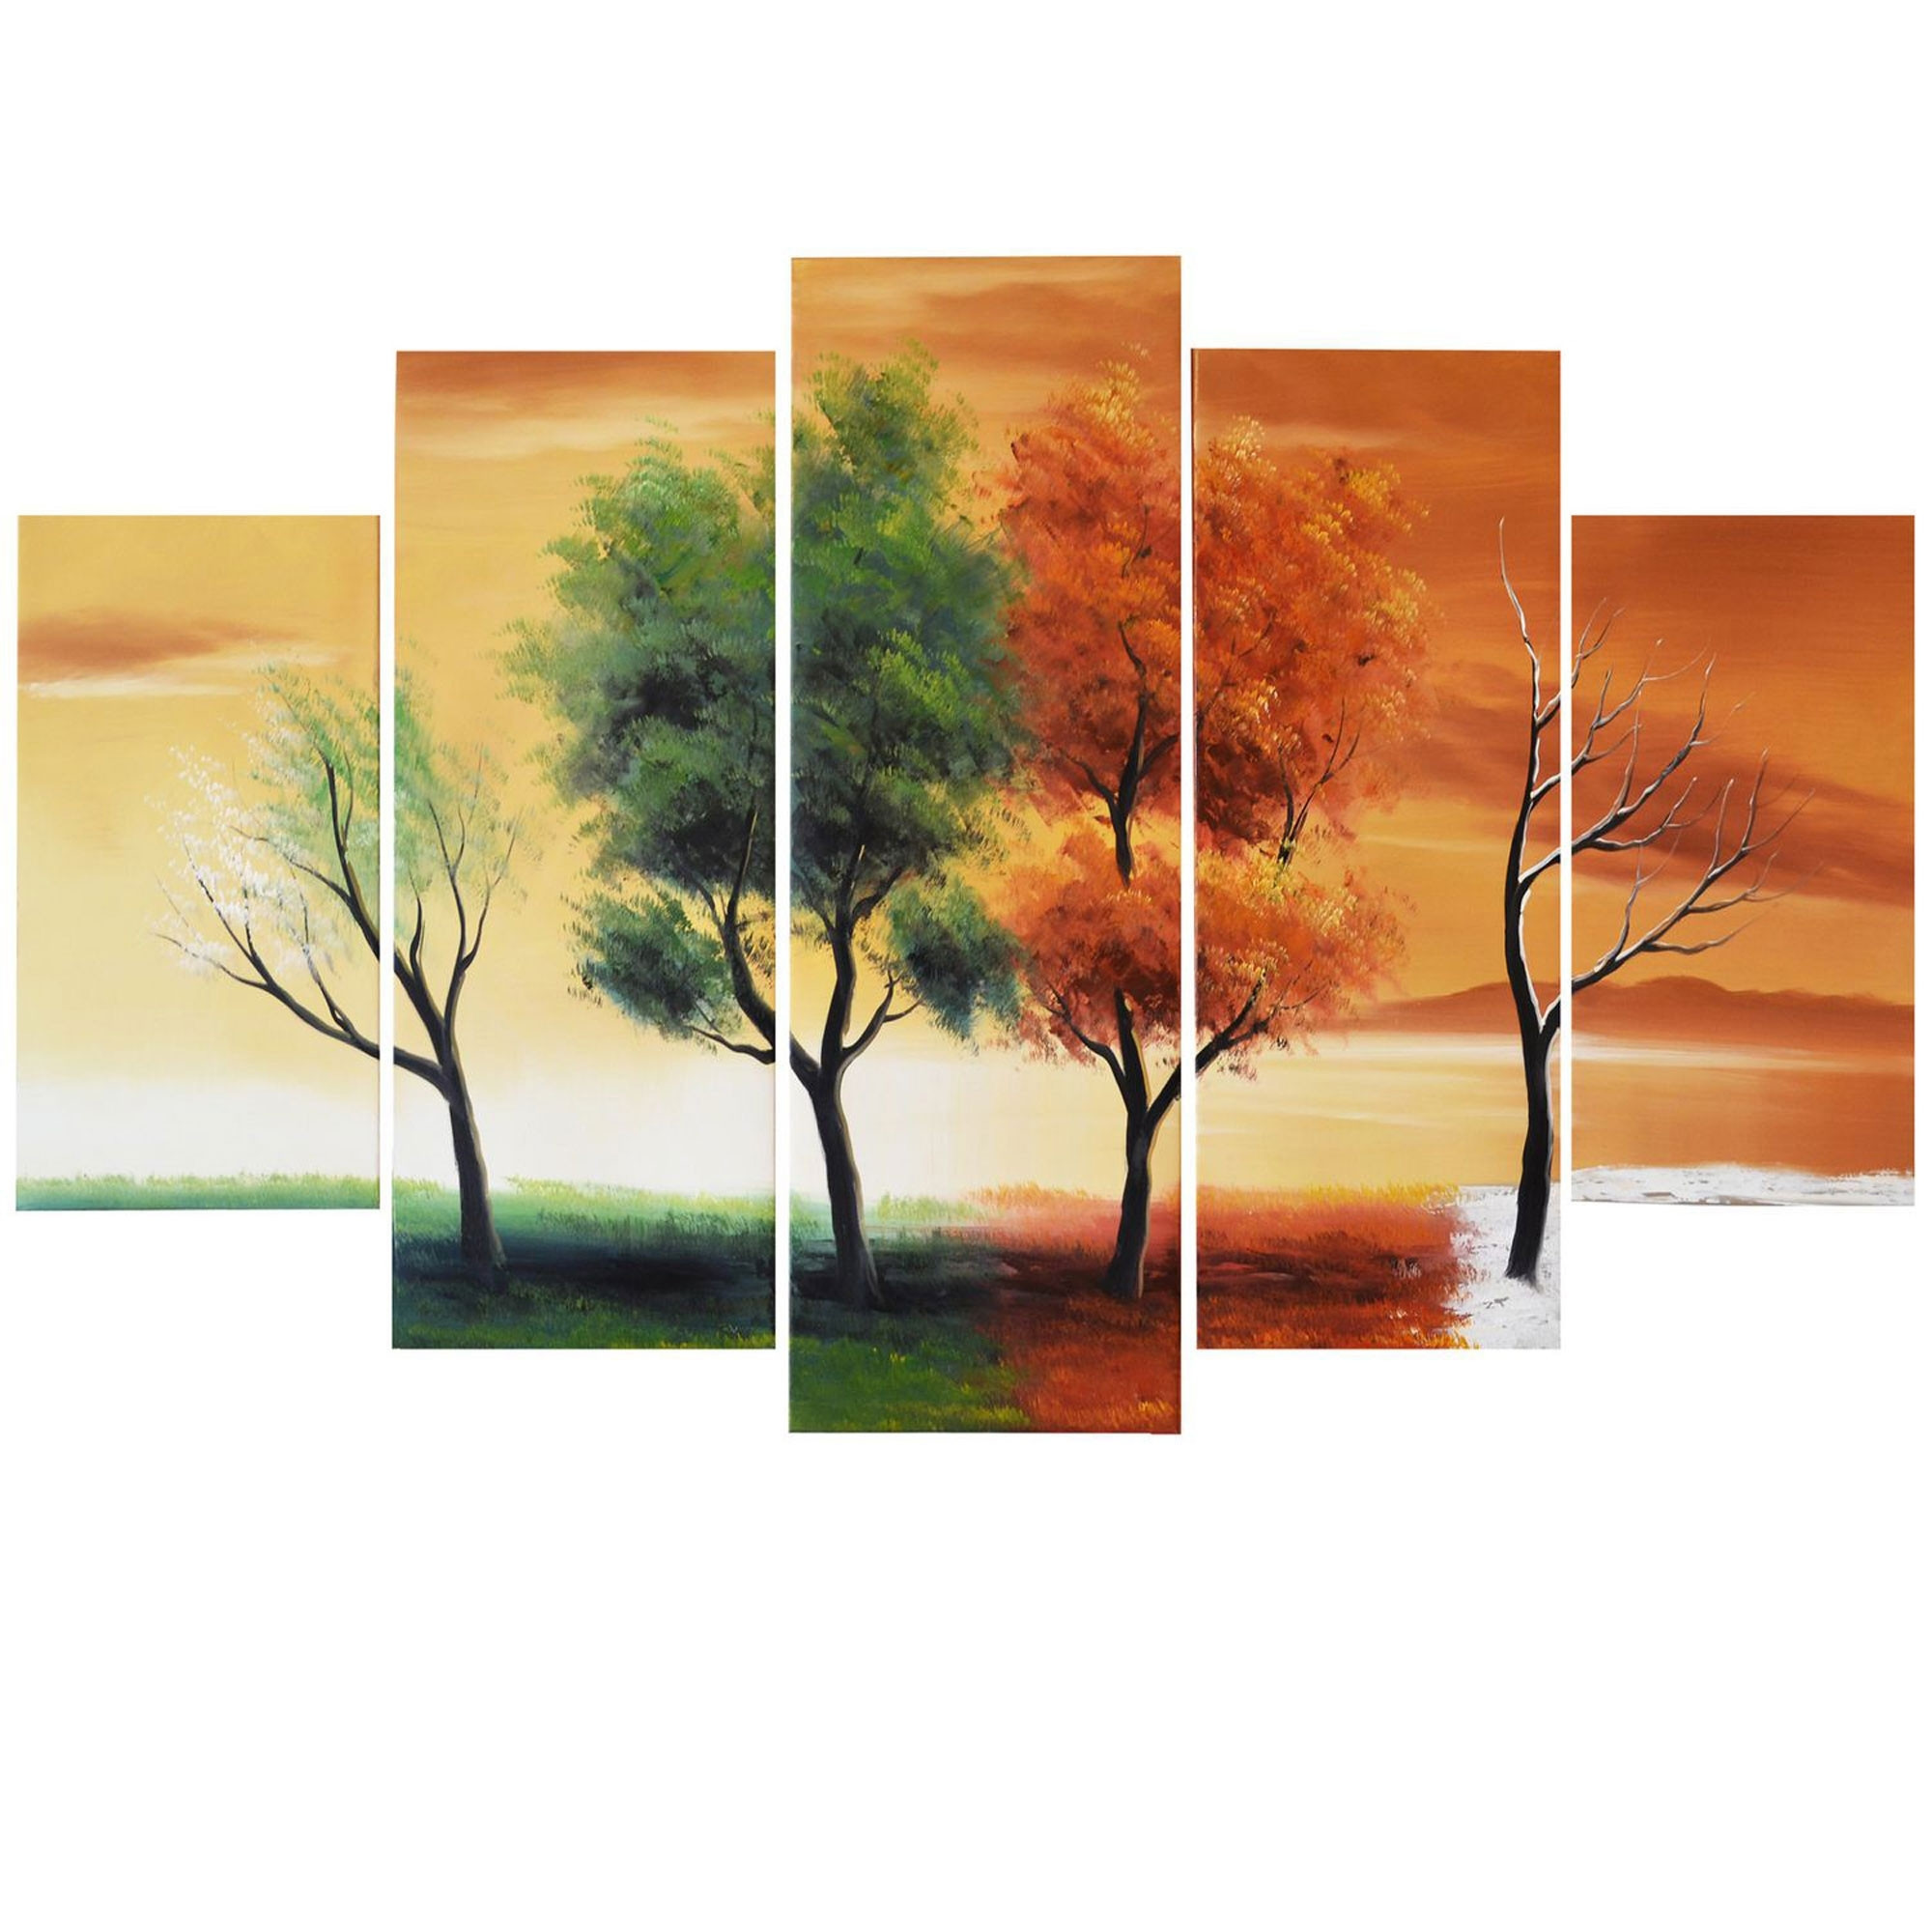 Best ideas about Nature Wall Art . Save or Pin Best 20 of Abstract Nature Wall Art Now.